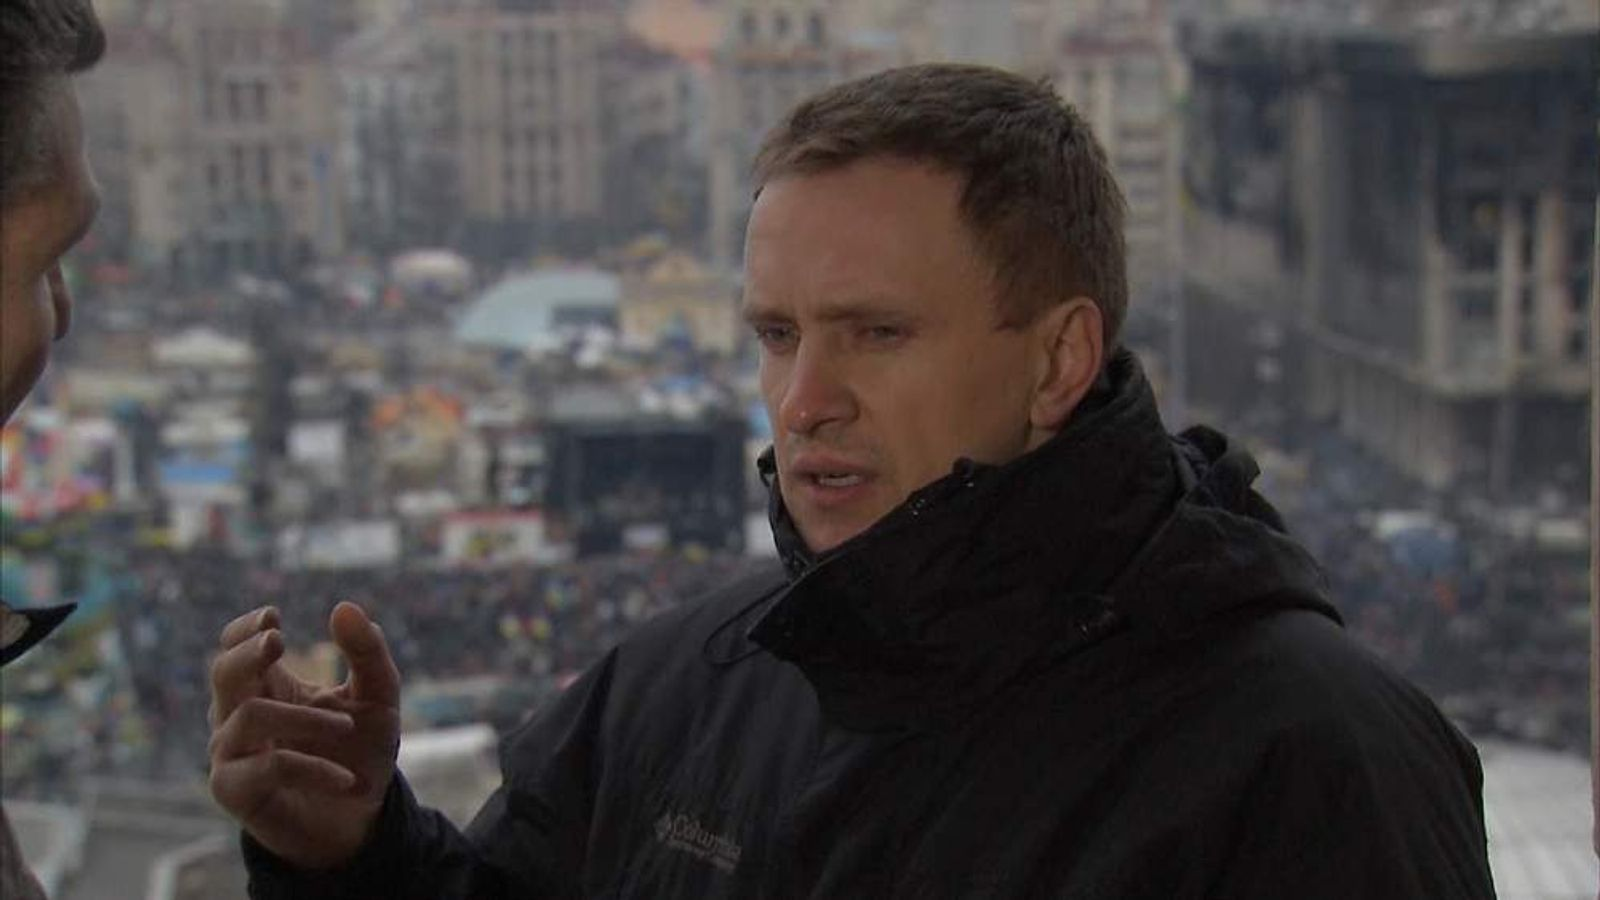 UKRAINE PROTEST Roman Zhuk screengrab